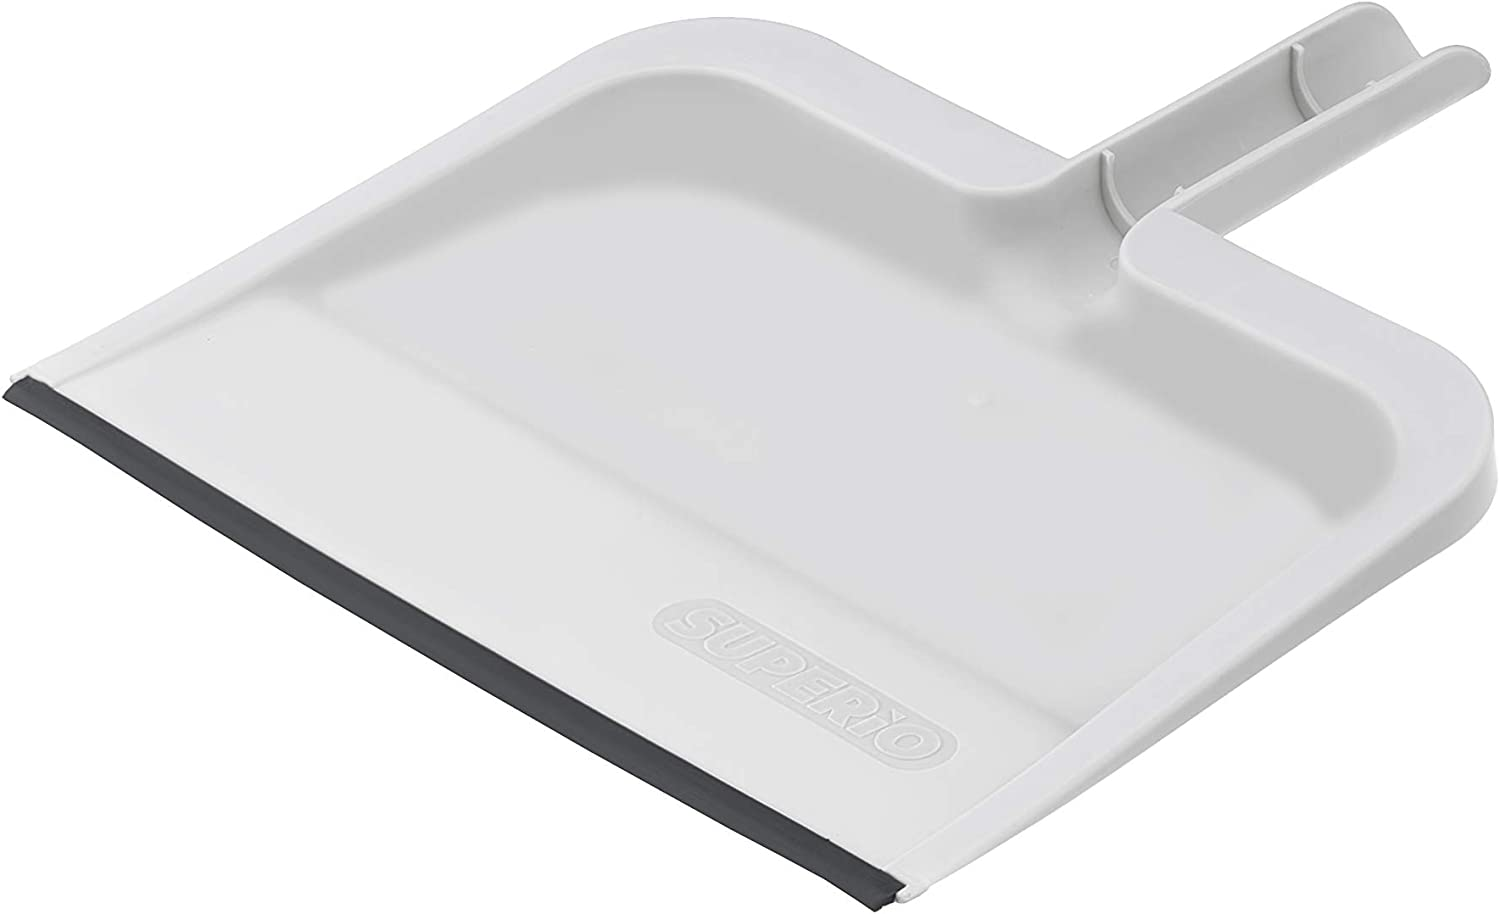 Superio Clip-On Dustpan with Rubber Lip Light Grey - 10 inch Wide Durable Plastic Dust Pan with Comfort Grip Handle, Lightweight Multi Surface, Heavy Duty, Easy Sweep Broom (1)